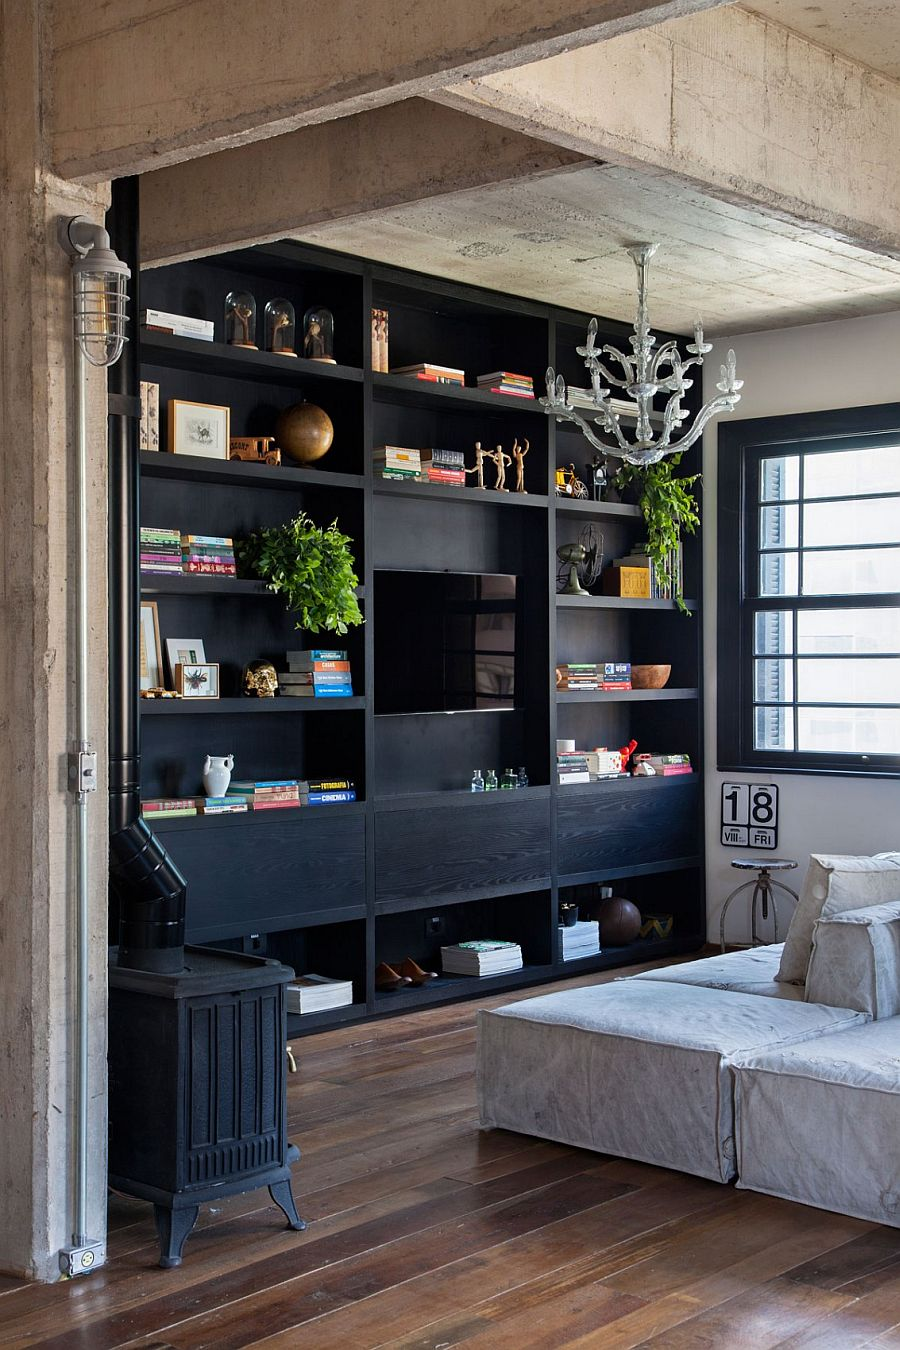 Large, open bookshelf in dark wood anchors the light-filled living room